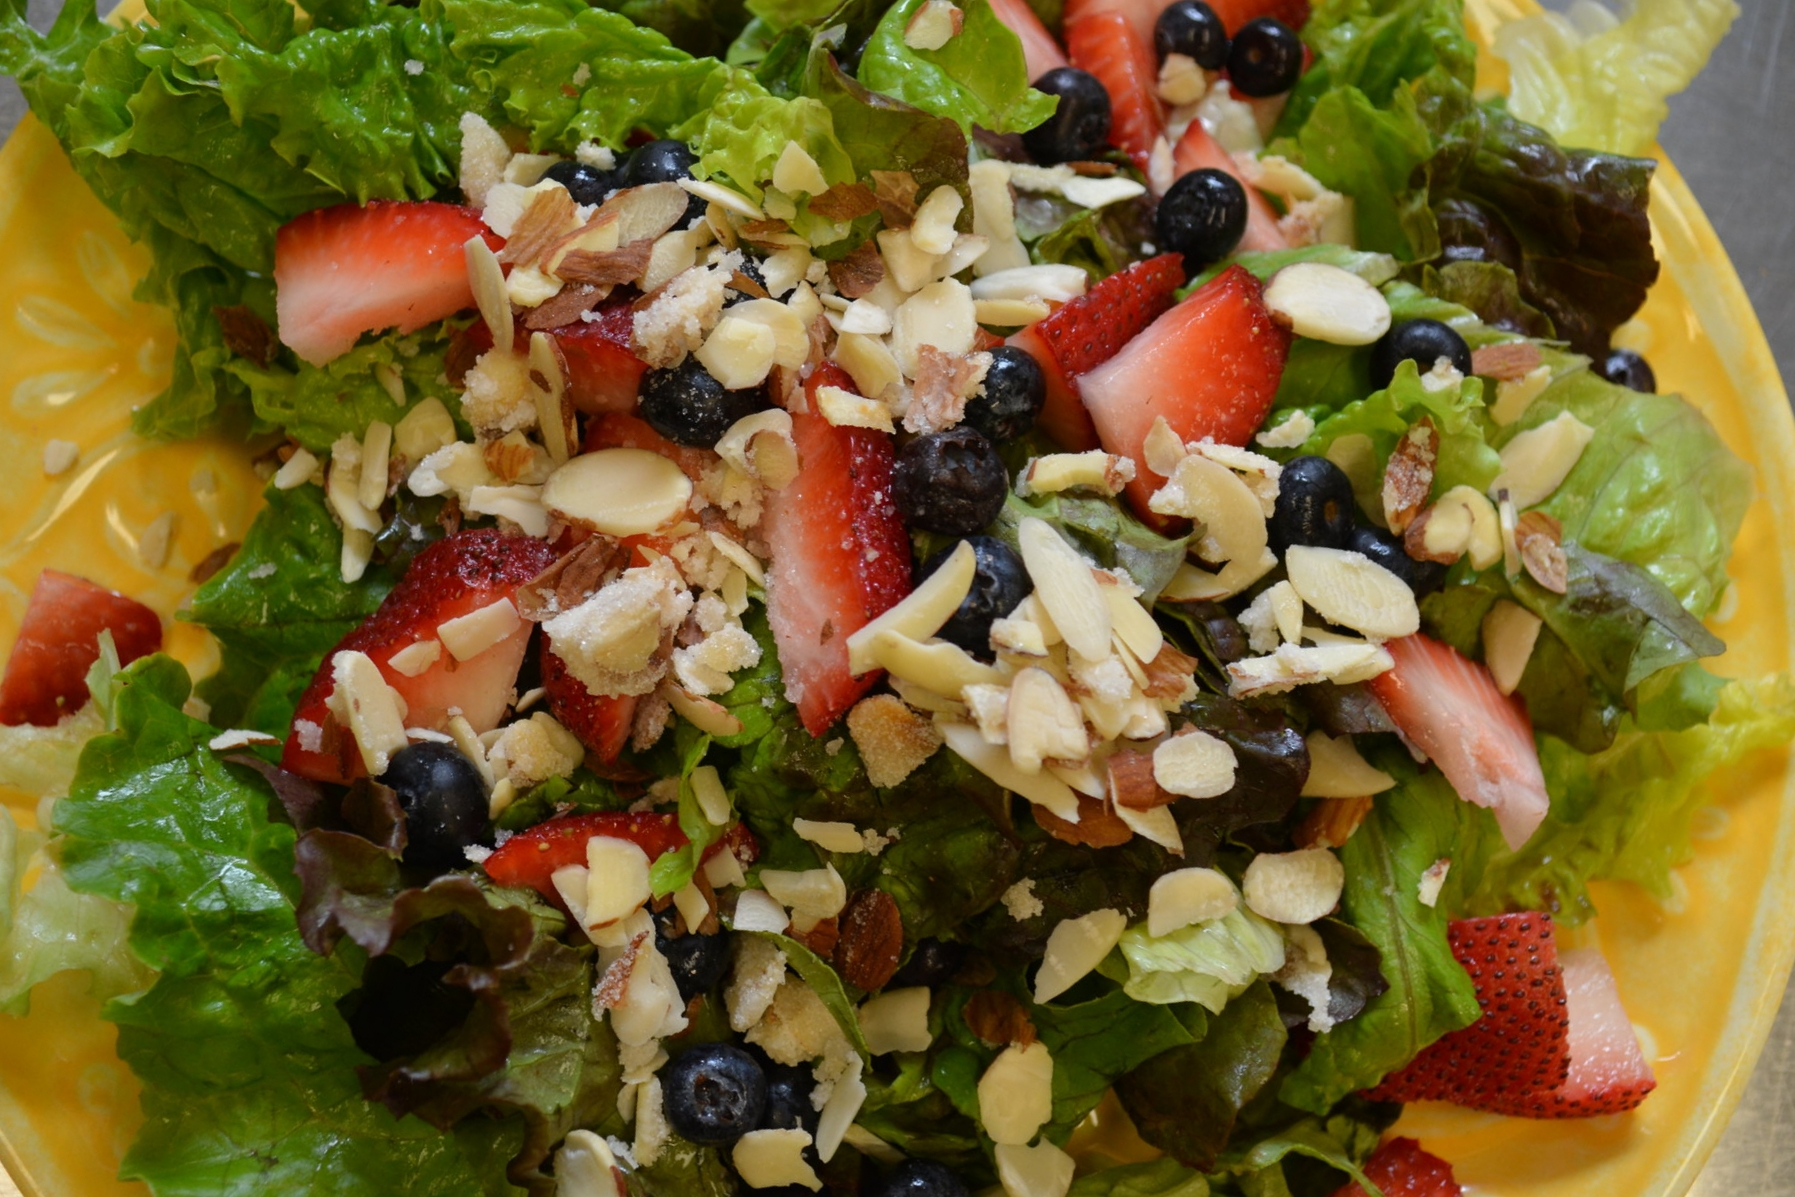 AMERICAN - Fresh red and green leafy lettuce, fresh sliced strawberries, blueberries, carmelized almonds topped off with our homemade sweet & sour red wine vinaigrette dressing